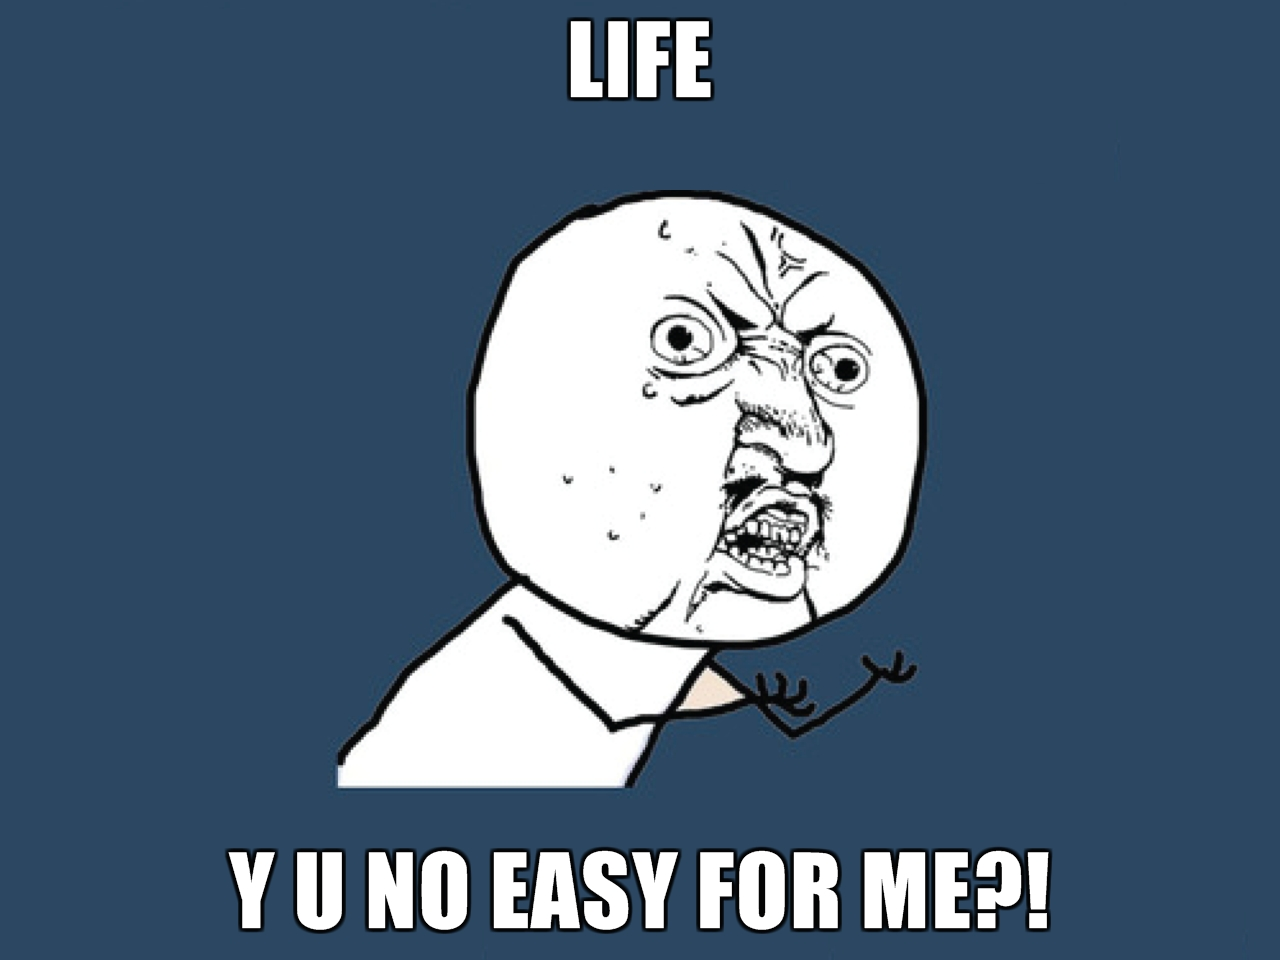 LIFE-Y-U-NO-EASY-FOR-ME